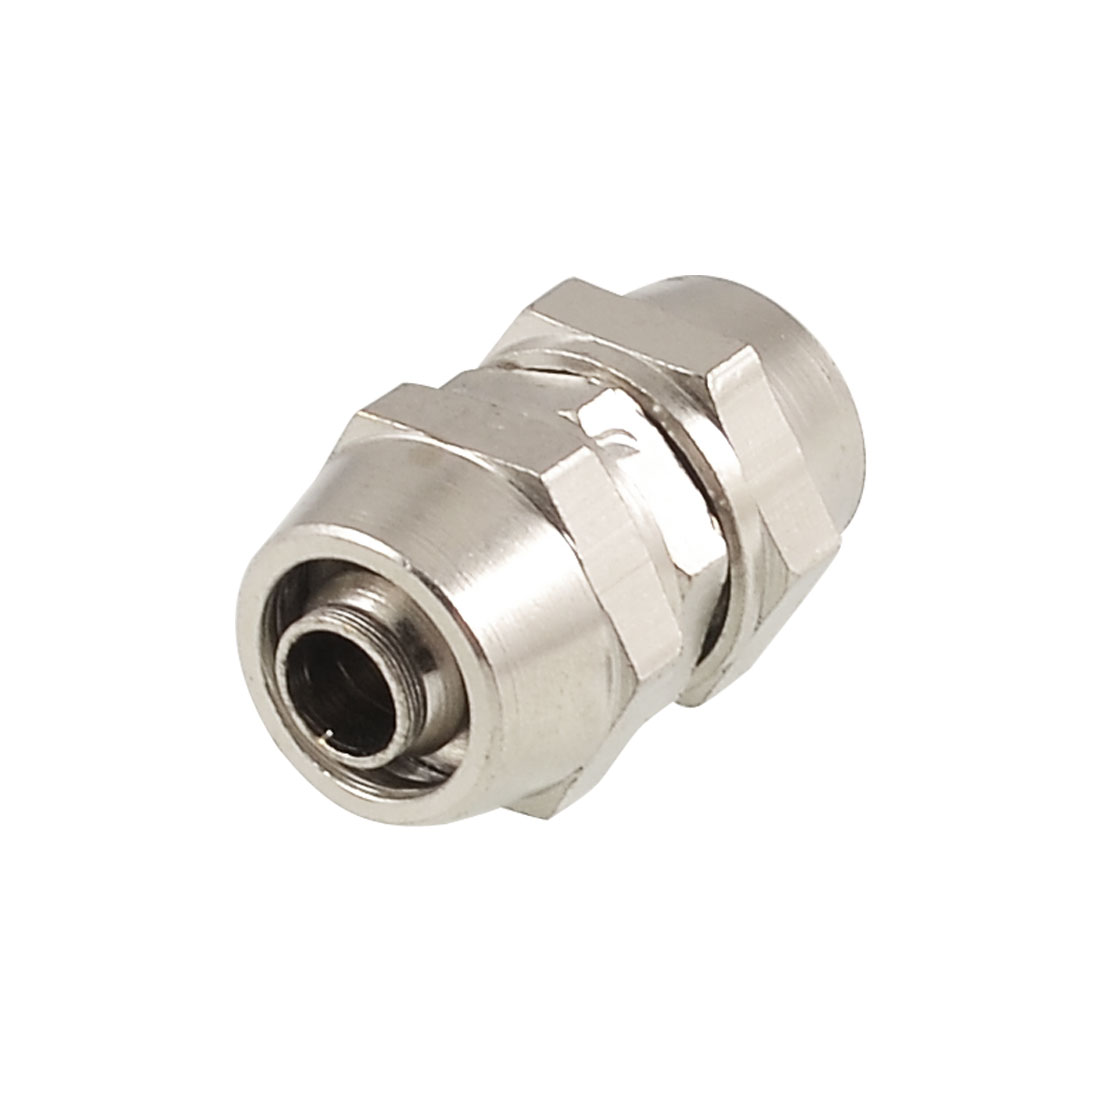 6mm x 10mm Pneumatic Air Tube Straight Quick Coupler Coupling Connector